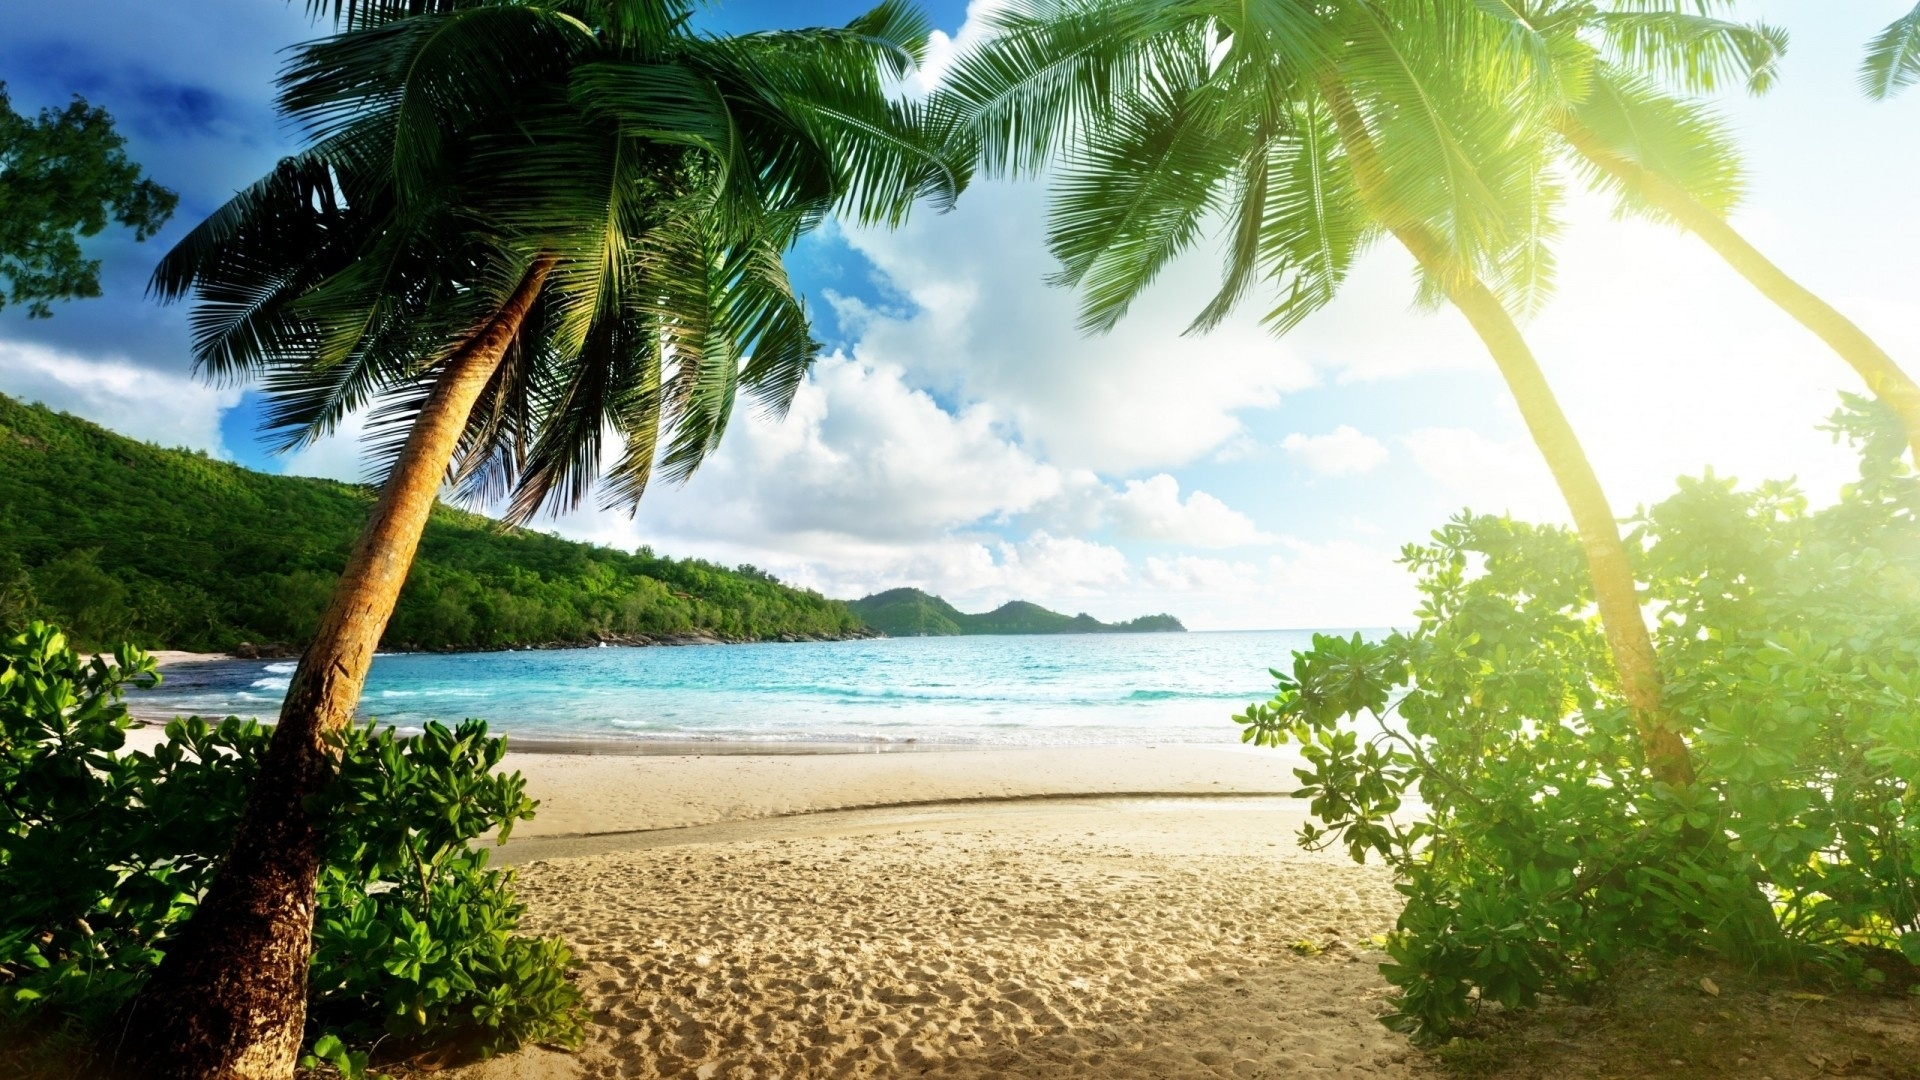 Paradise HD Download